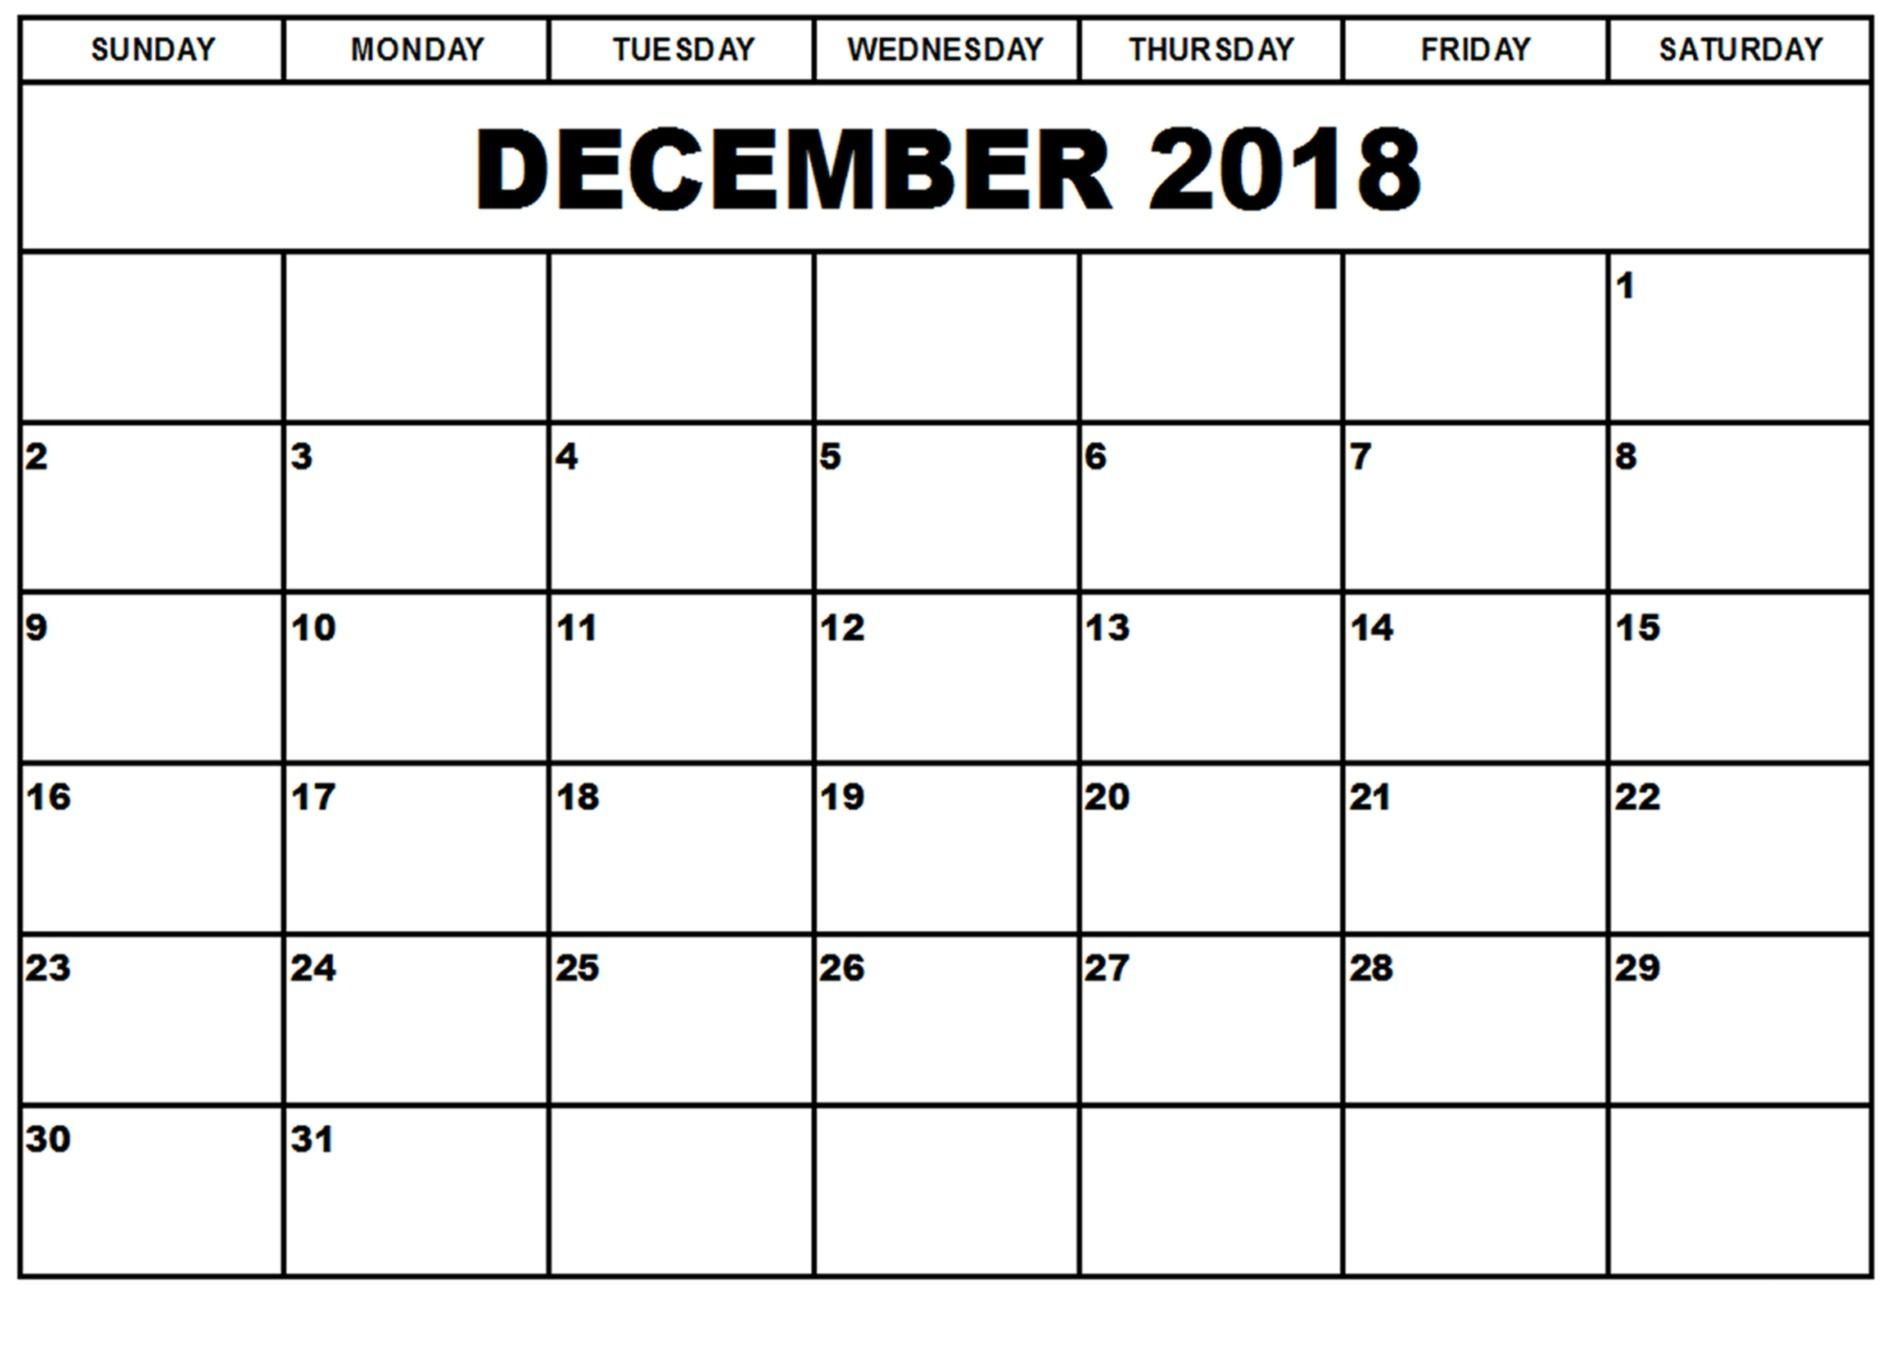 Dec 2018 Calendar Printable Online Template June 2019 Calendar